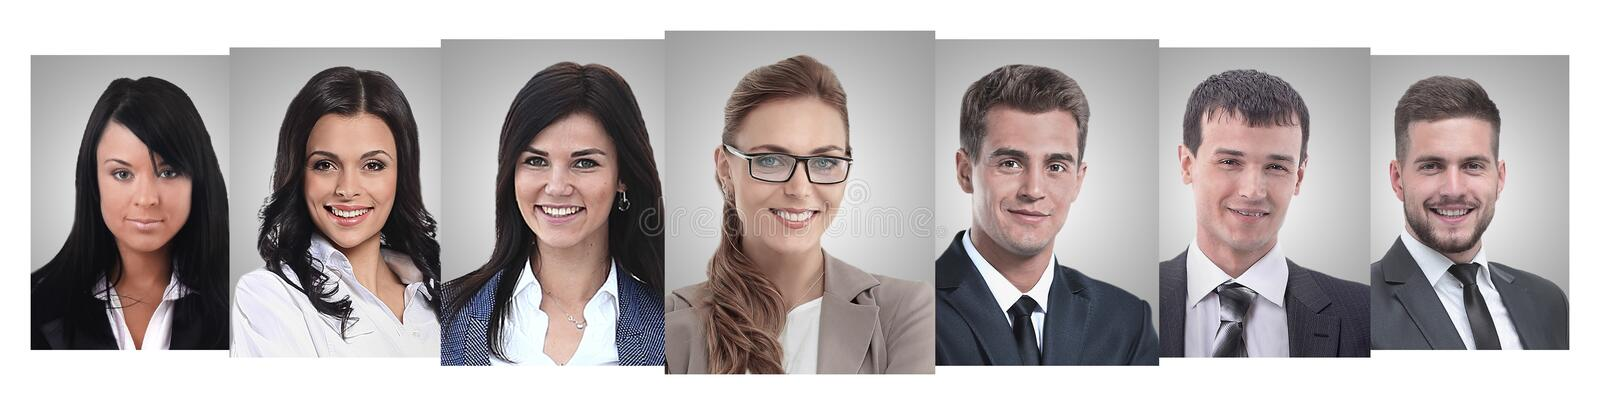 Panoramic collage of portraits of young entrepreneurs. royalty free stock photo